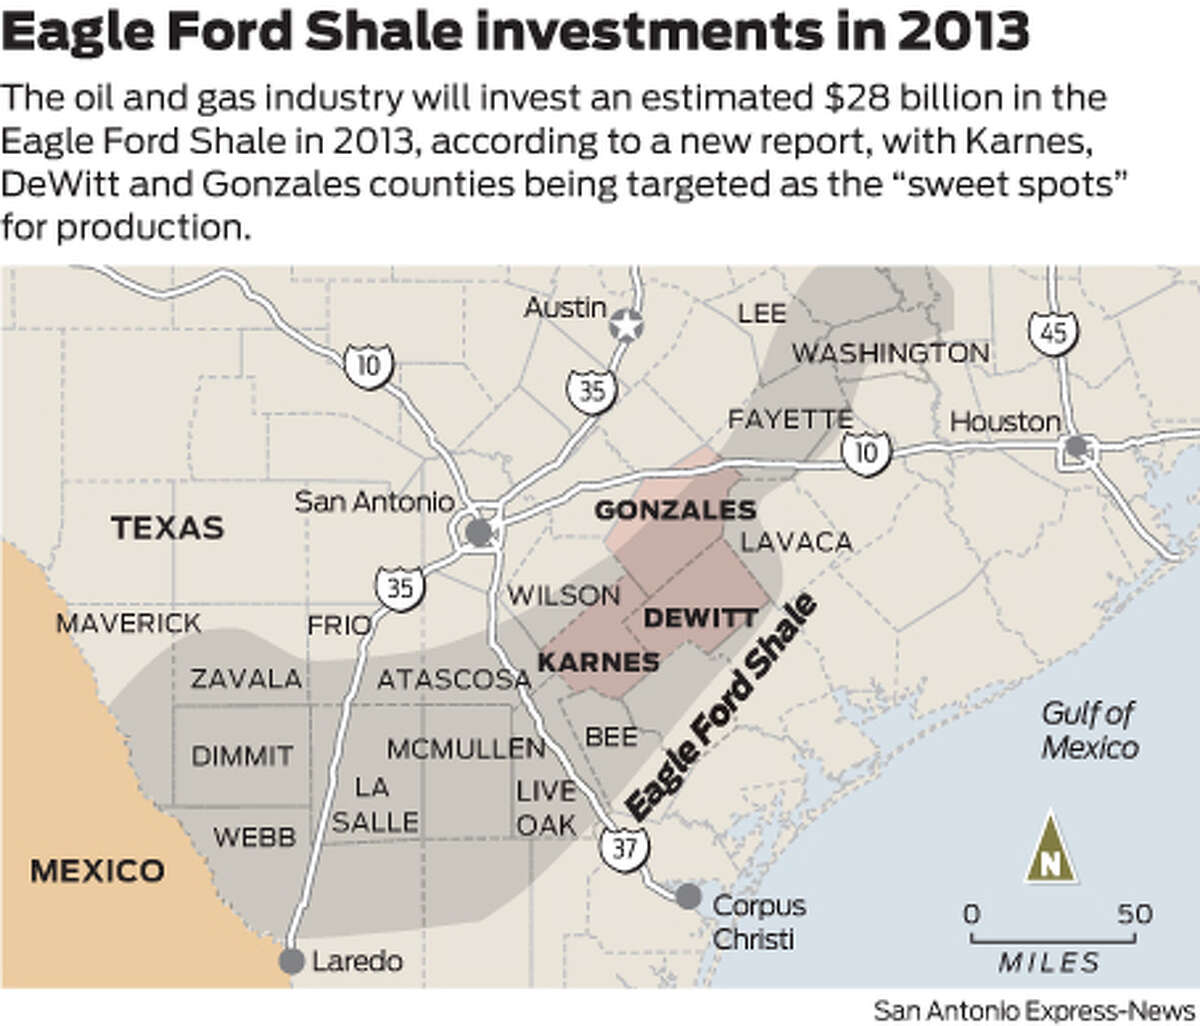 """The oil and gas industry will invest an estimated $28 billion in the Eagle Ford Shale in 2013, according to a new report, with Karnes, DeWitt and Gonzales counties being targeted as the """"sweet spots"""" for production."""